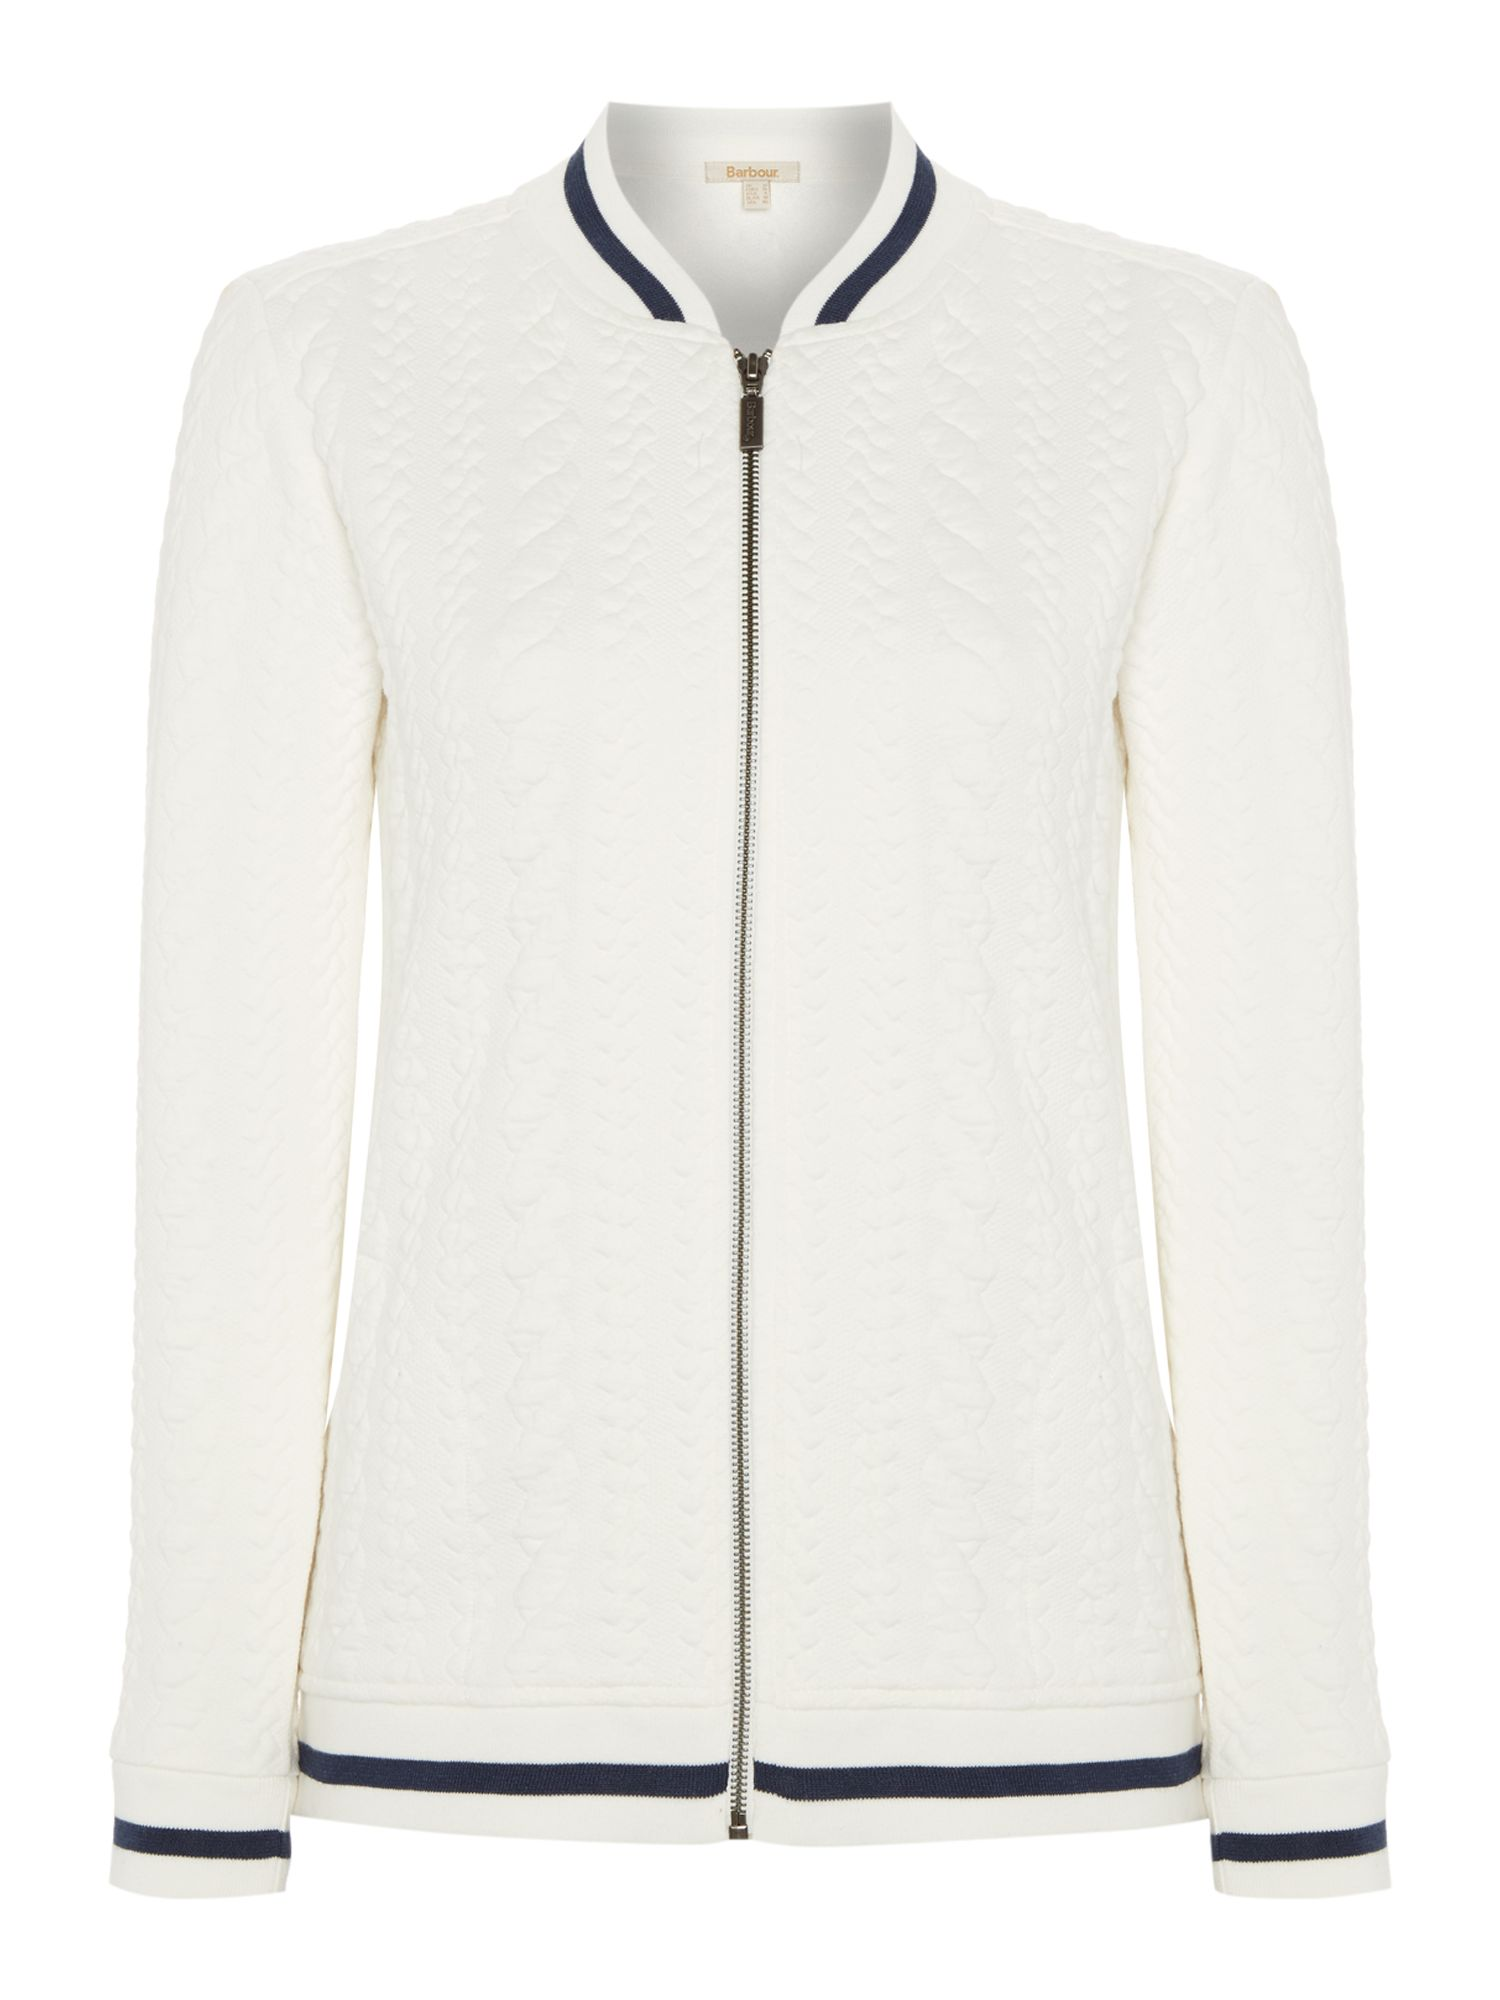 Barbour KELSEY SWEAT BOMBER JACKET, White